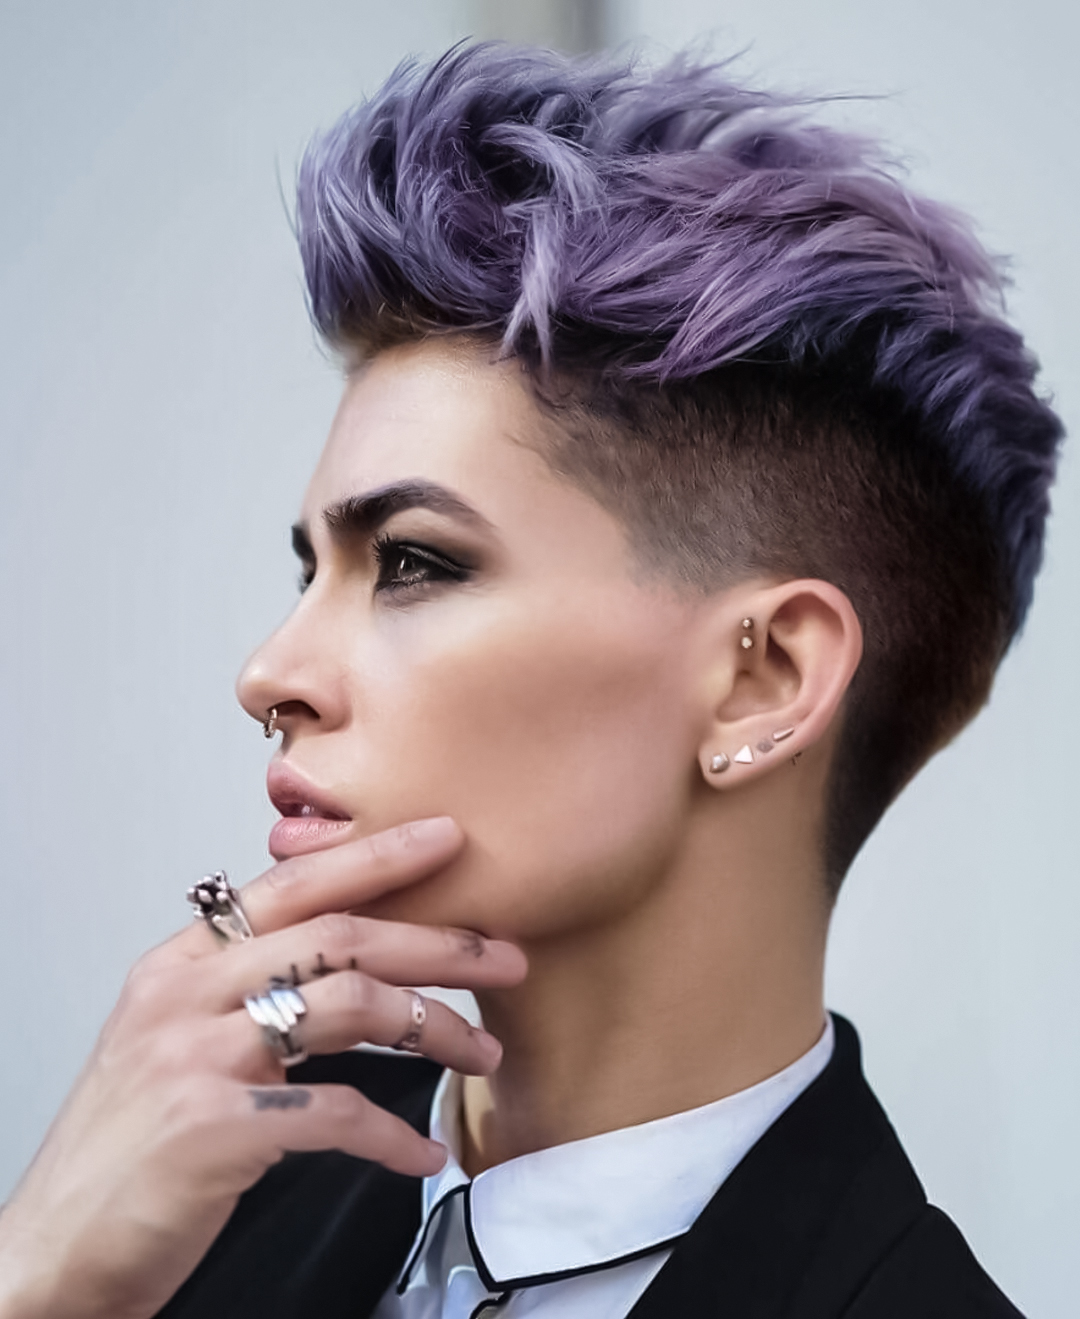 woman with purple quiff hairstyle